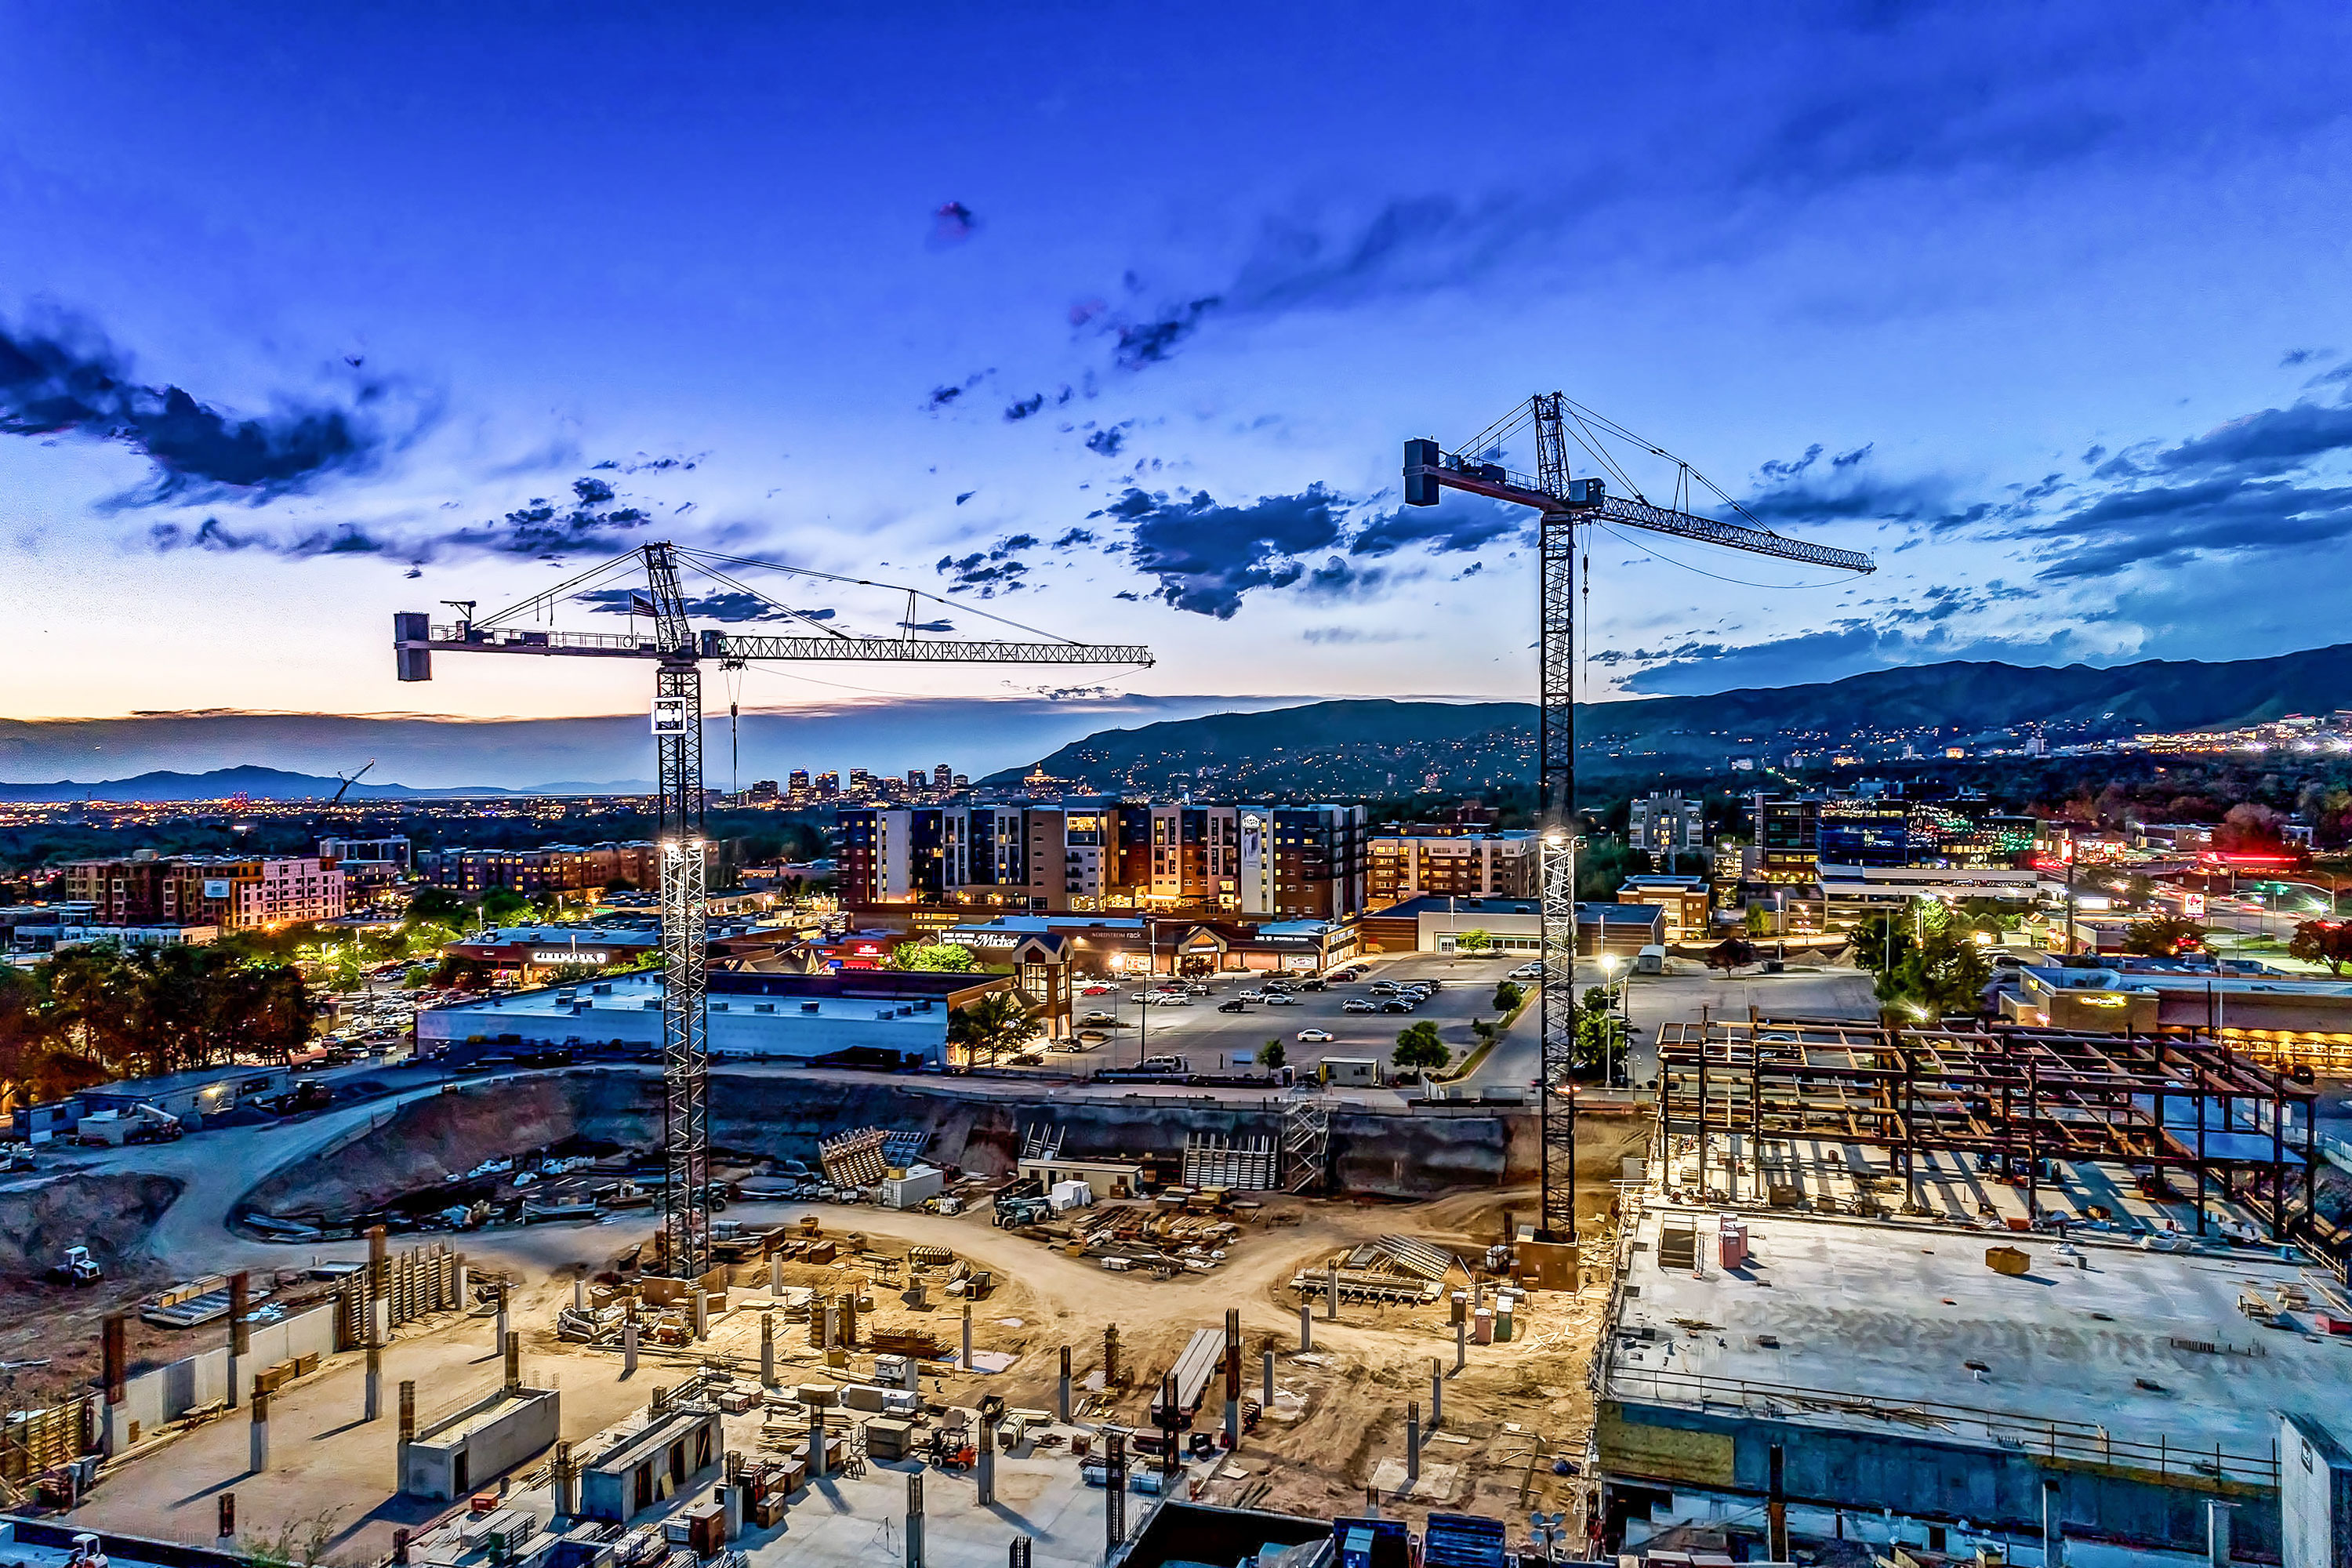 Construction Cranes - Salt Lake City, Utah. Aerial Photography by Alan Blakely.